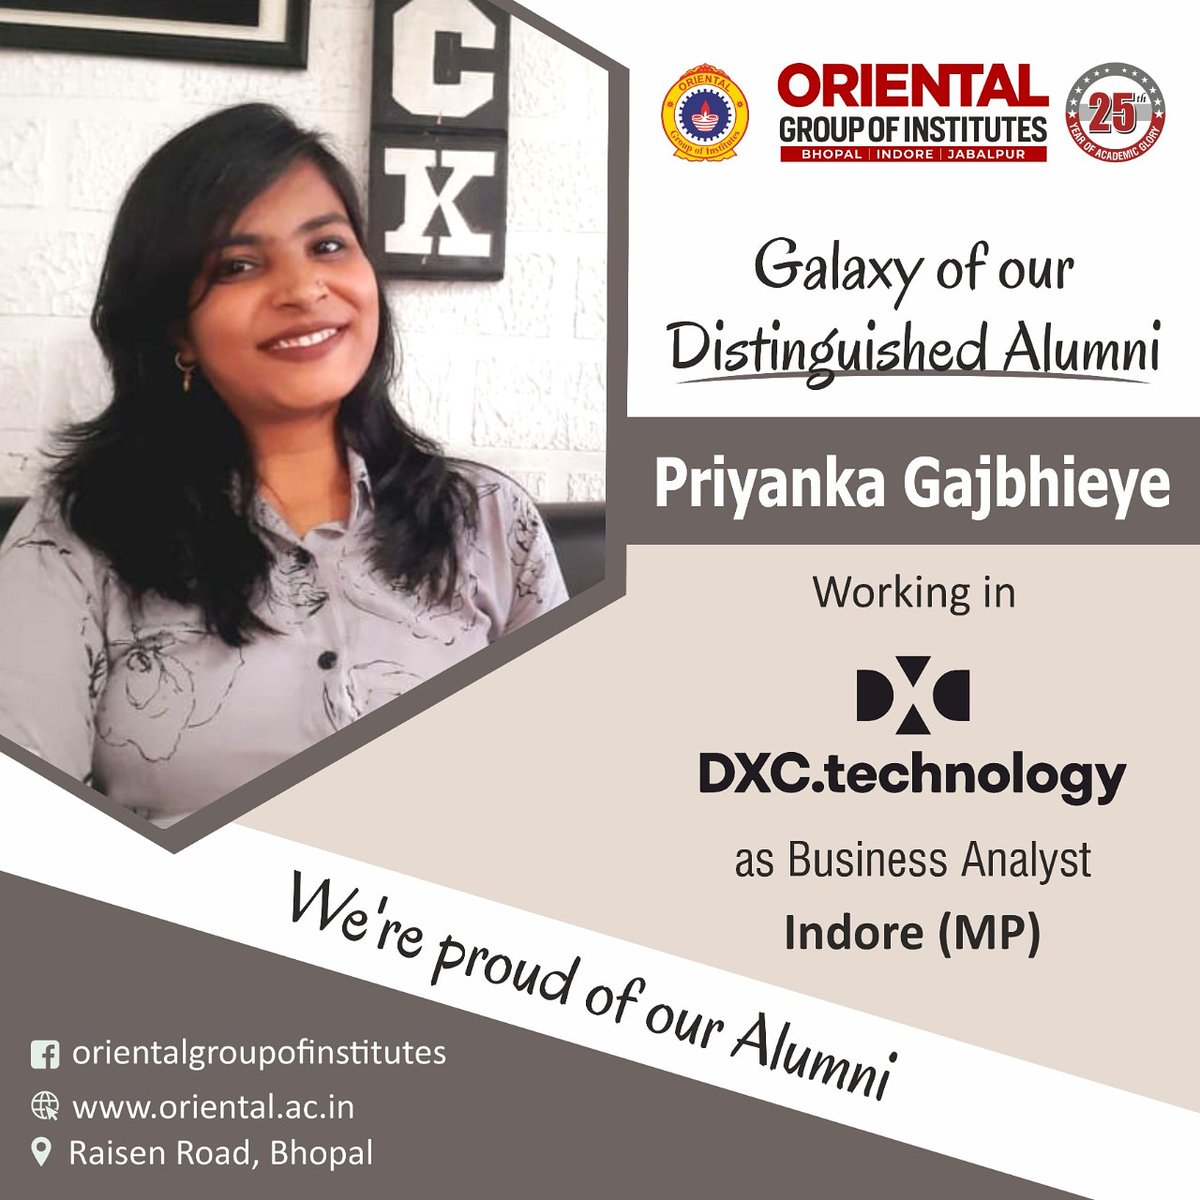 You made us feel #Proud!!! Priyanka Gajbhiye an #alumnus of #OGI working in #DXC technology as #Business #Analyst https://t.co/V9ZpPYnvoG